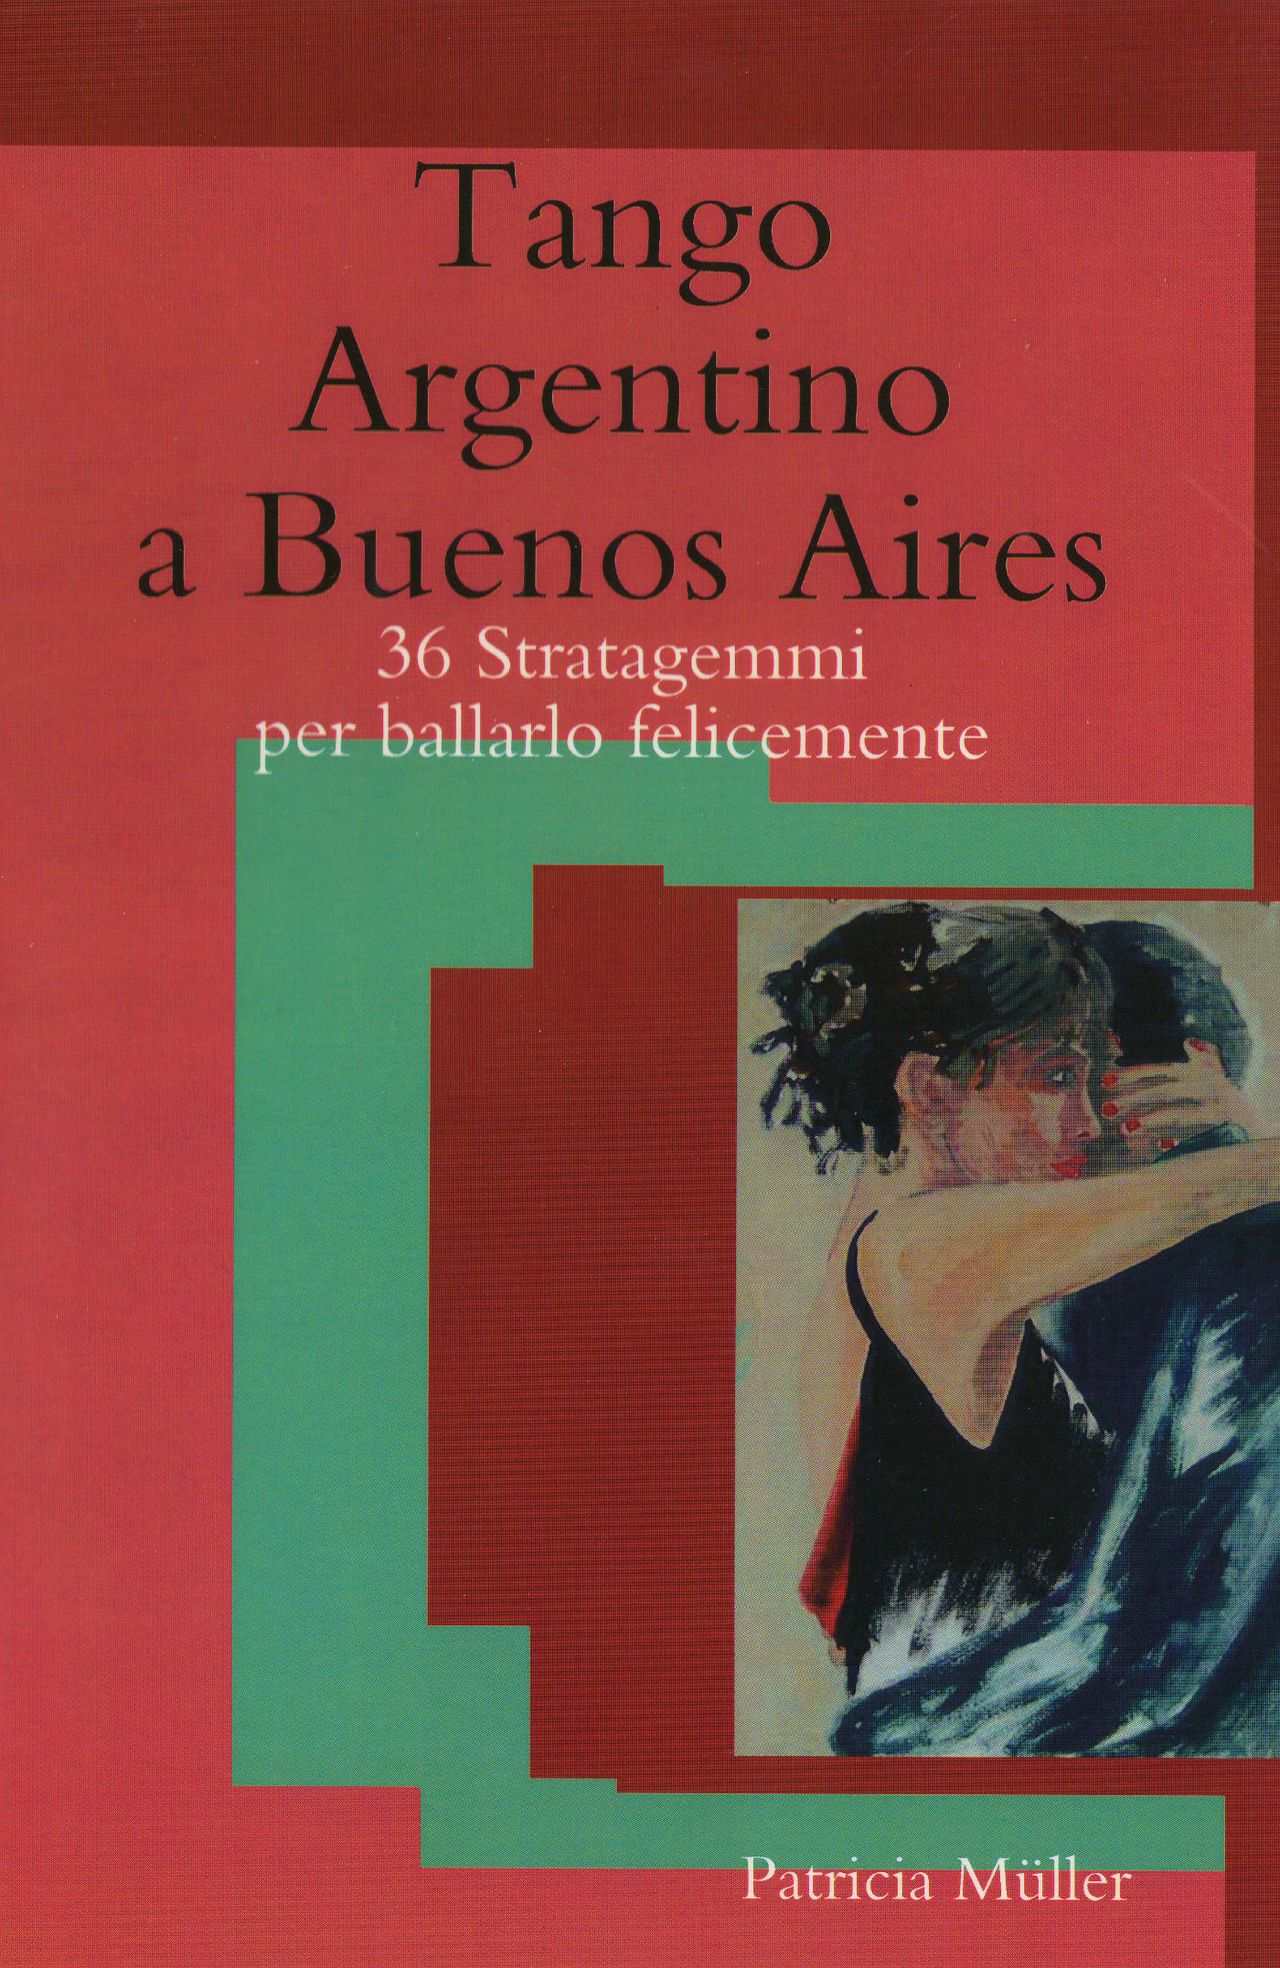 Tango Argentino a Buenos Aires - PDF